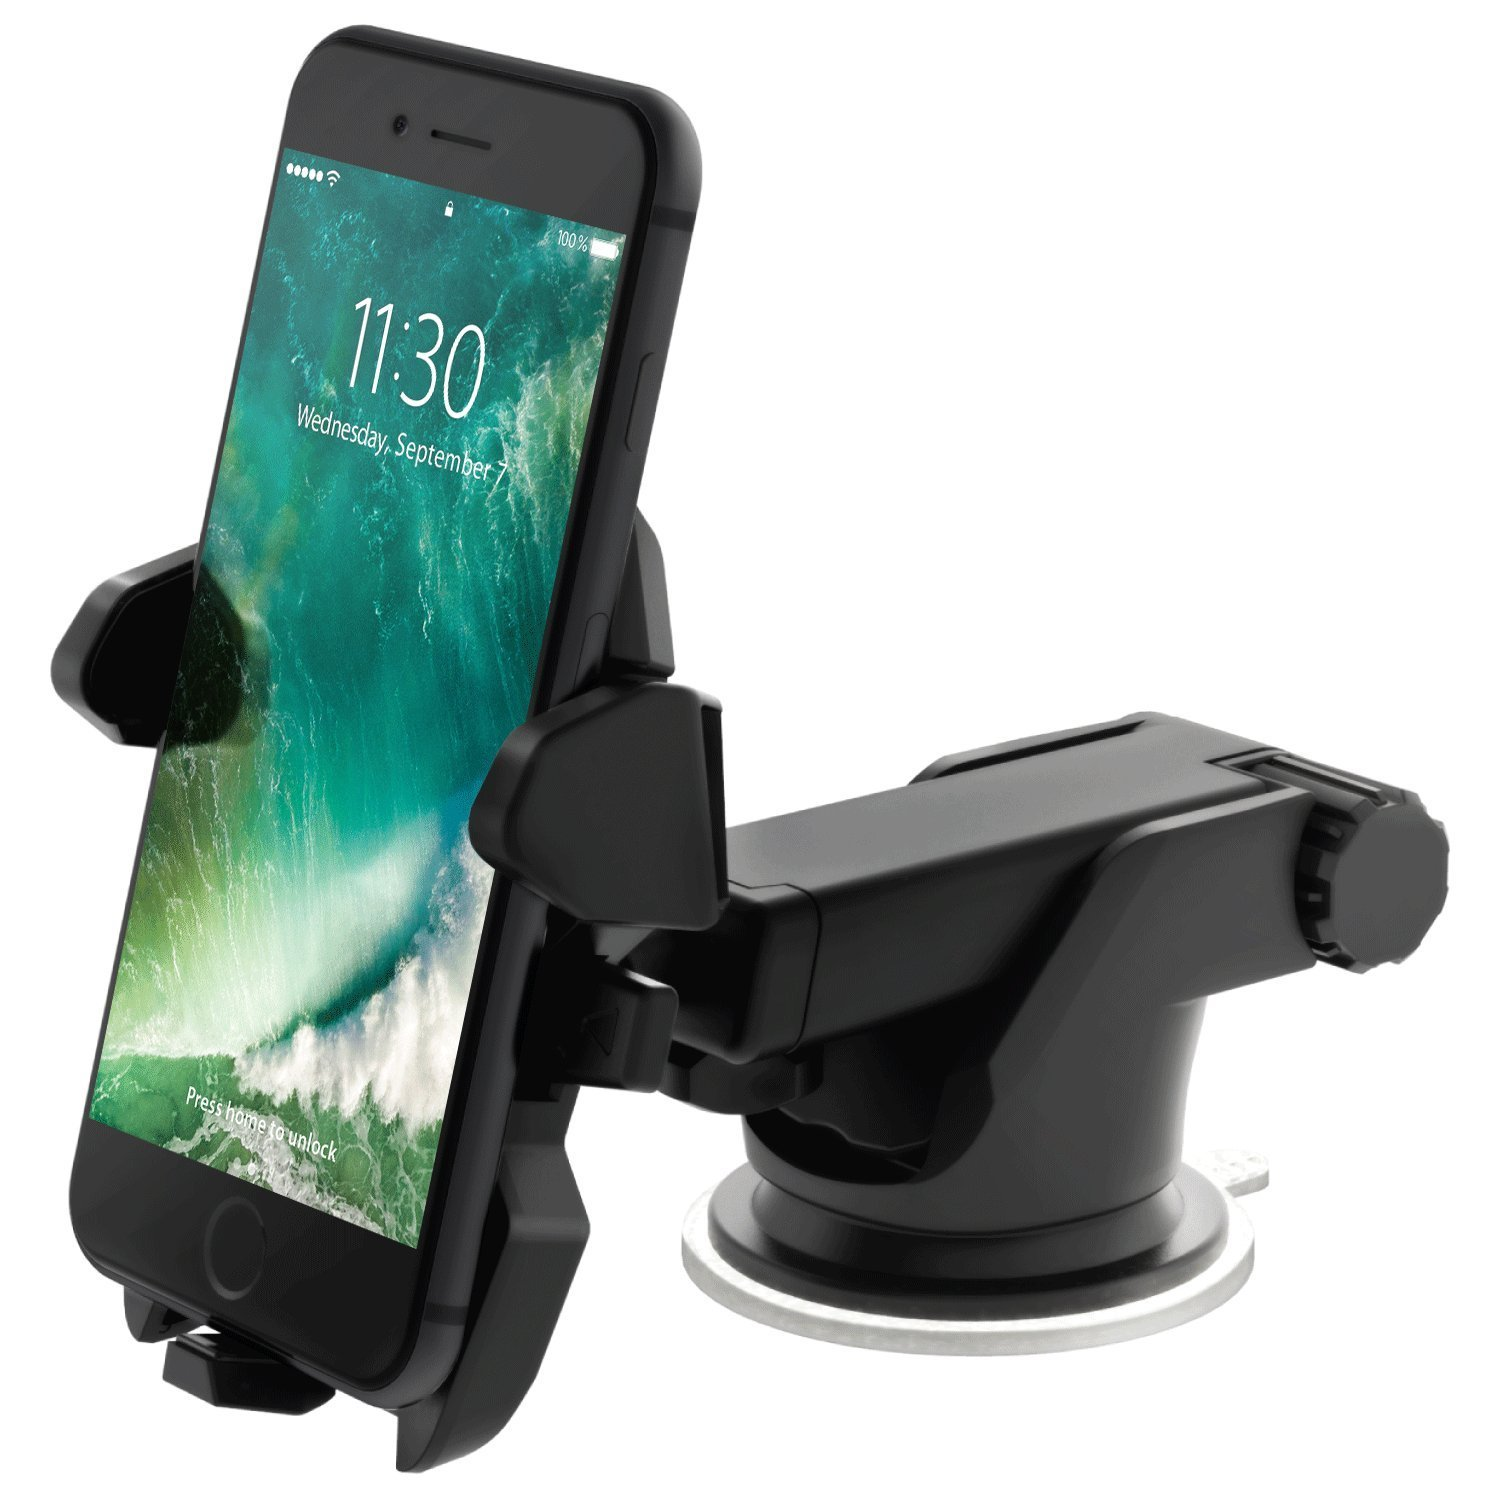 iOttie One Touch Windshild Phone Holder | 25+ Gifts for Him